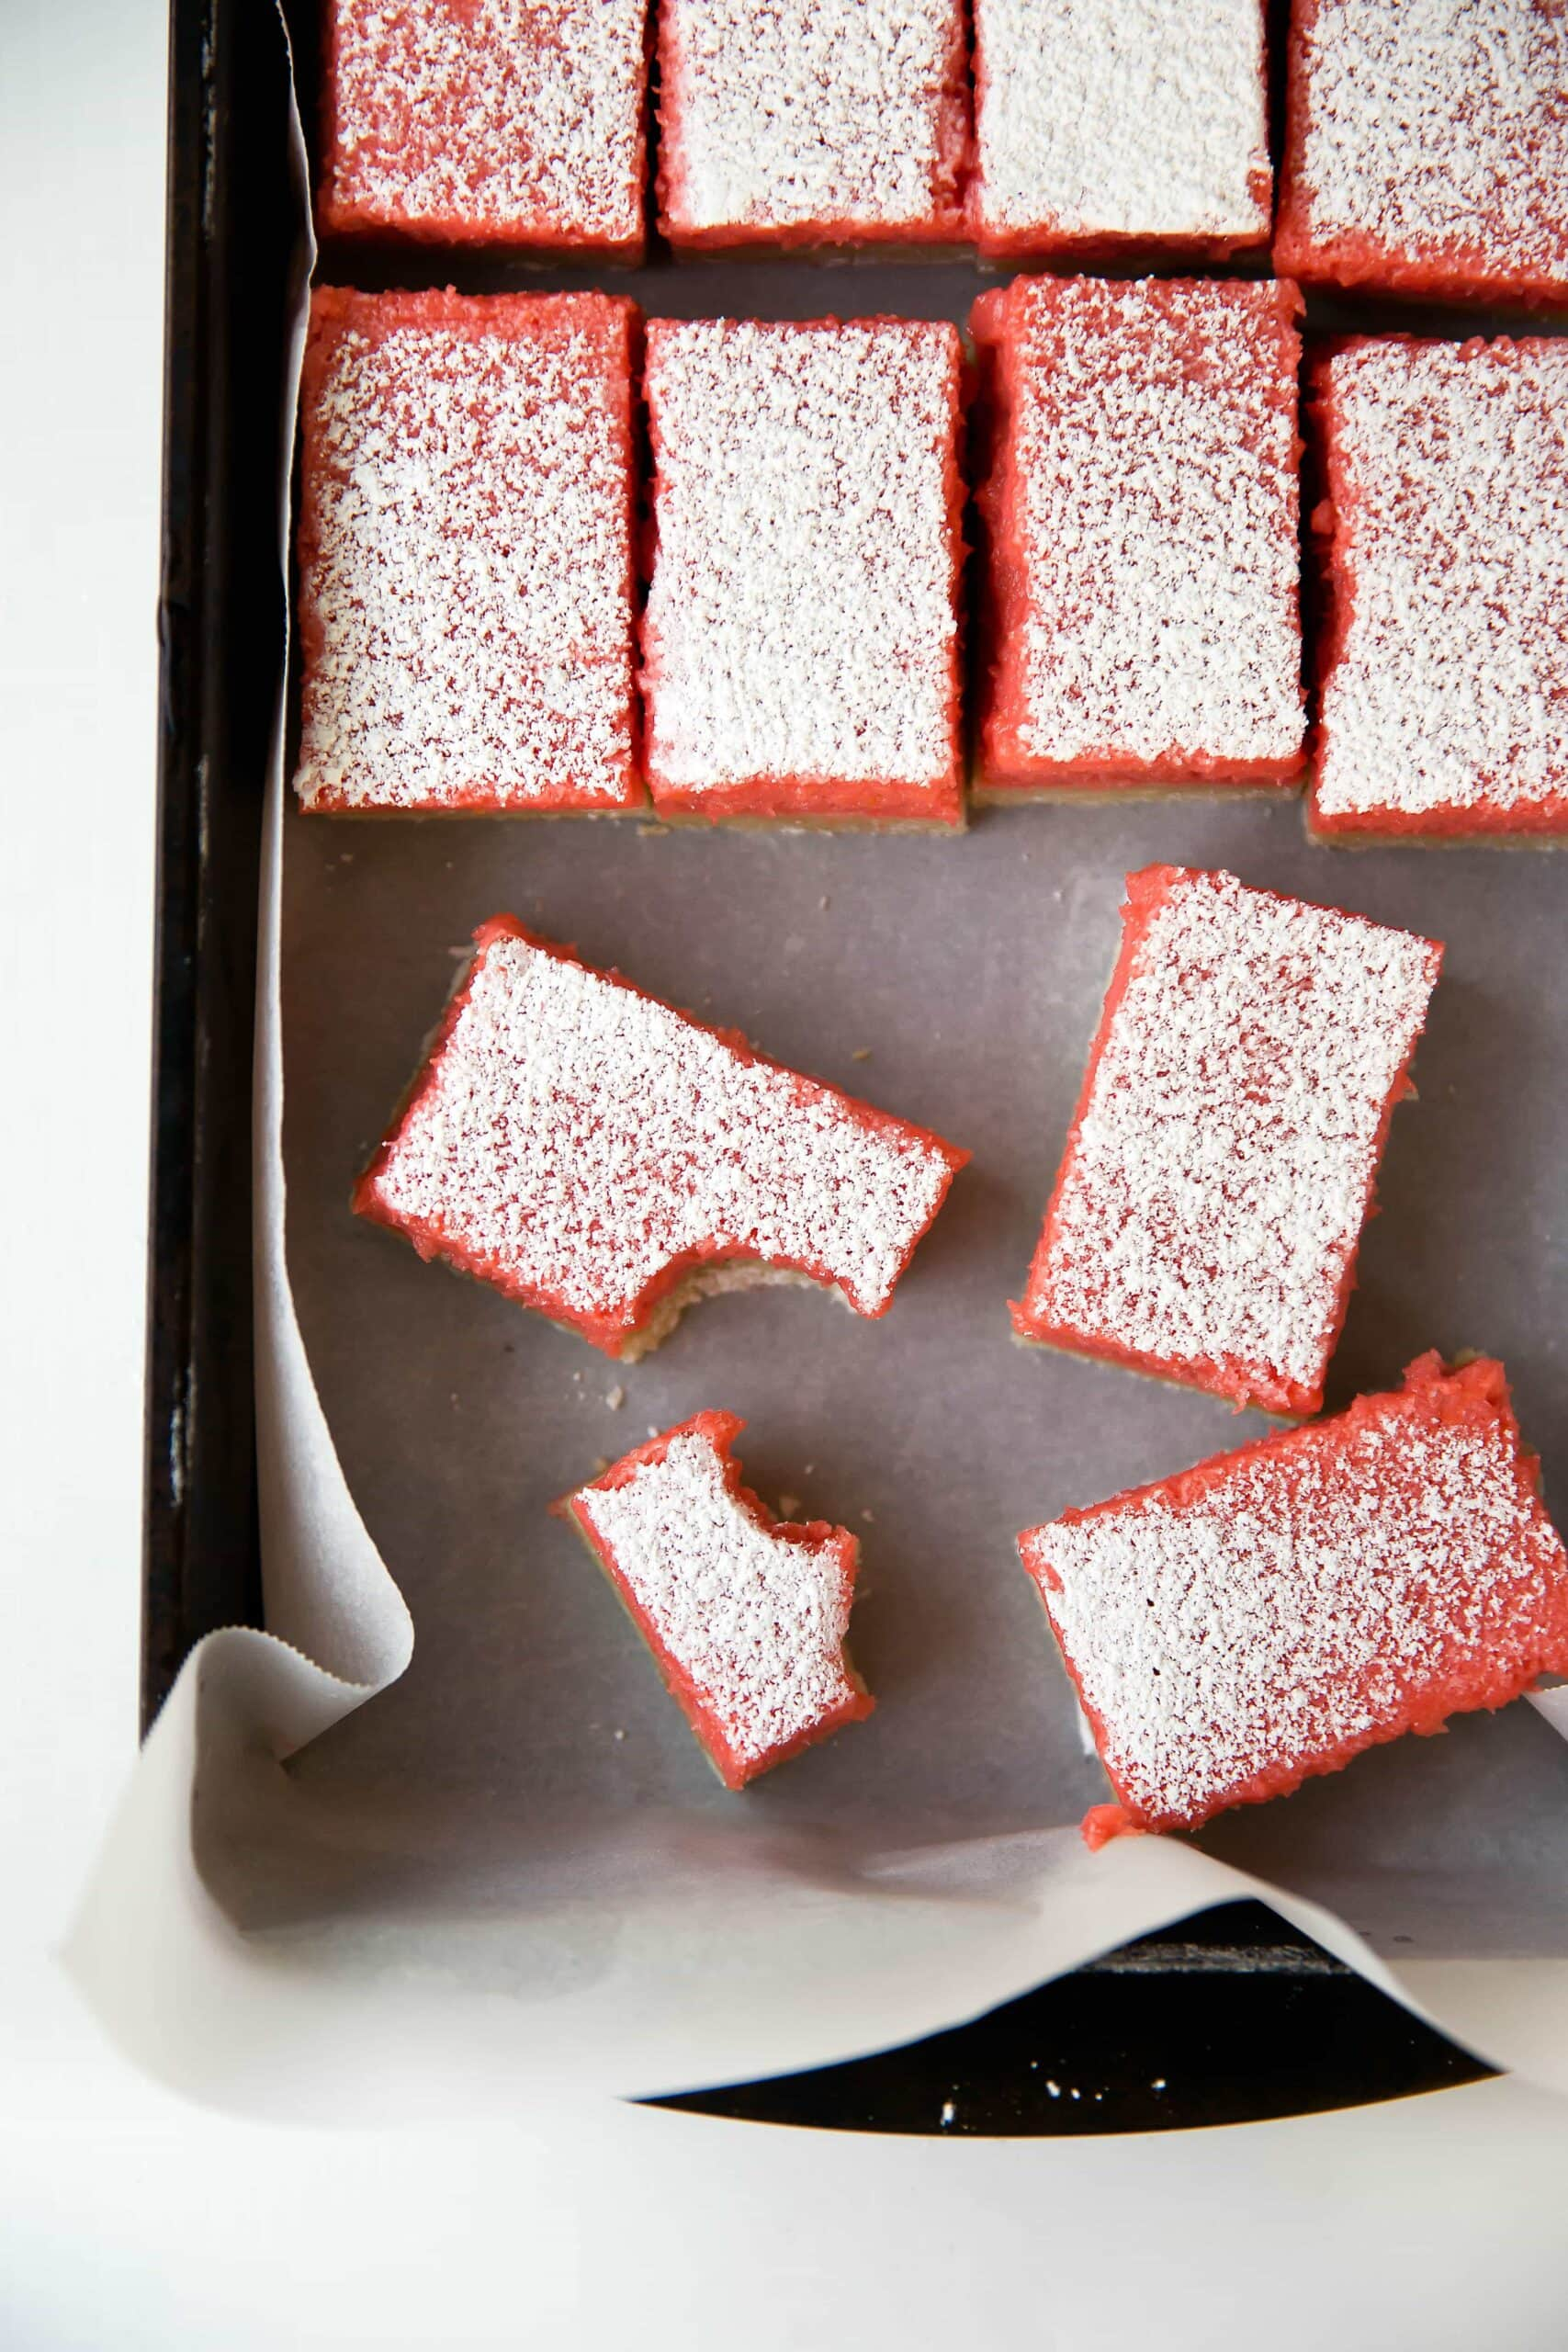 Rhubarb Bars: like a lemon bar, but with a bright and juicy rhubarb twist!